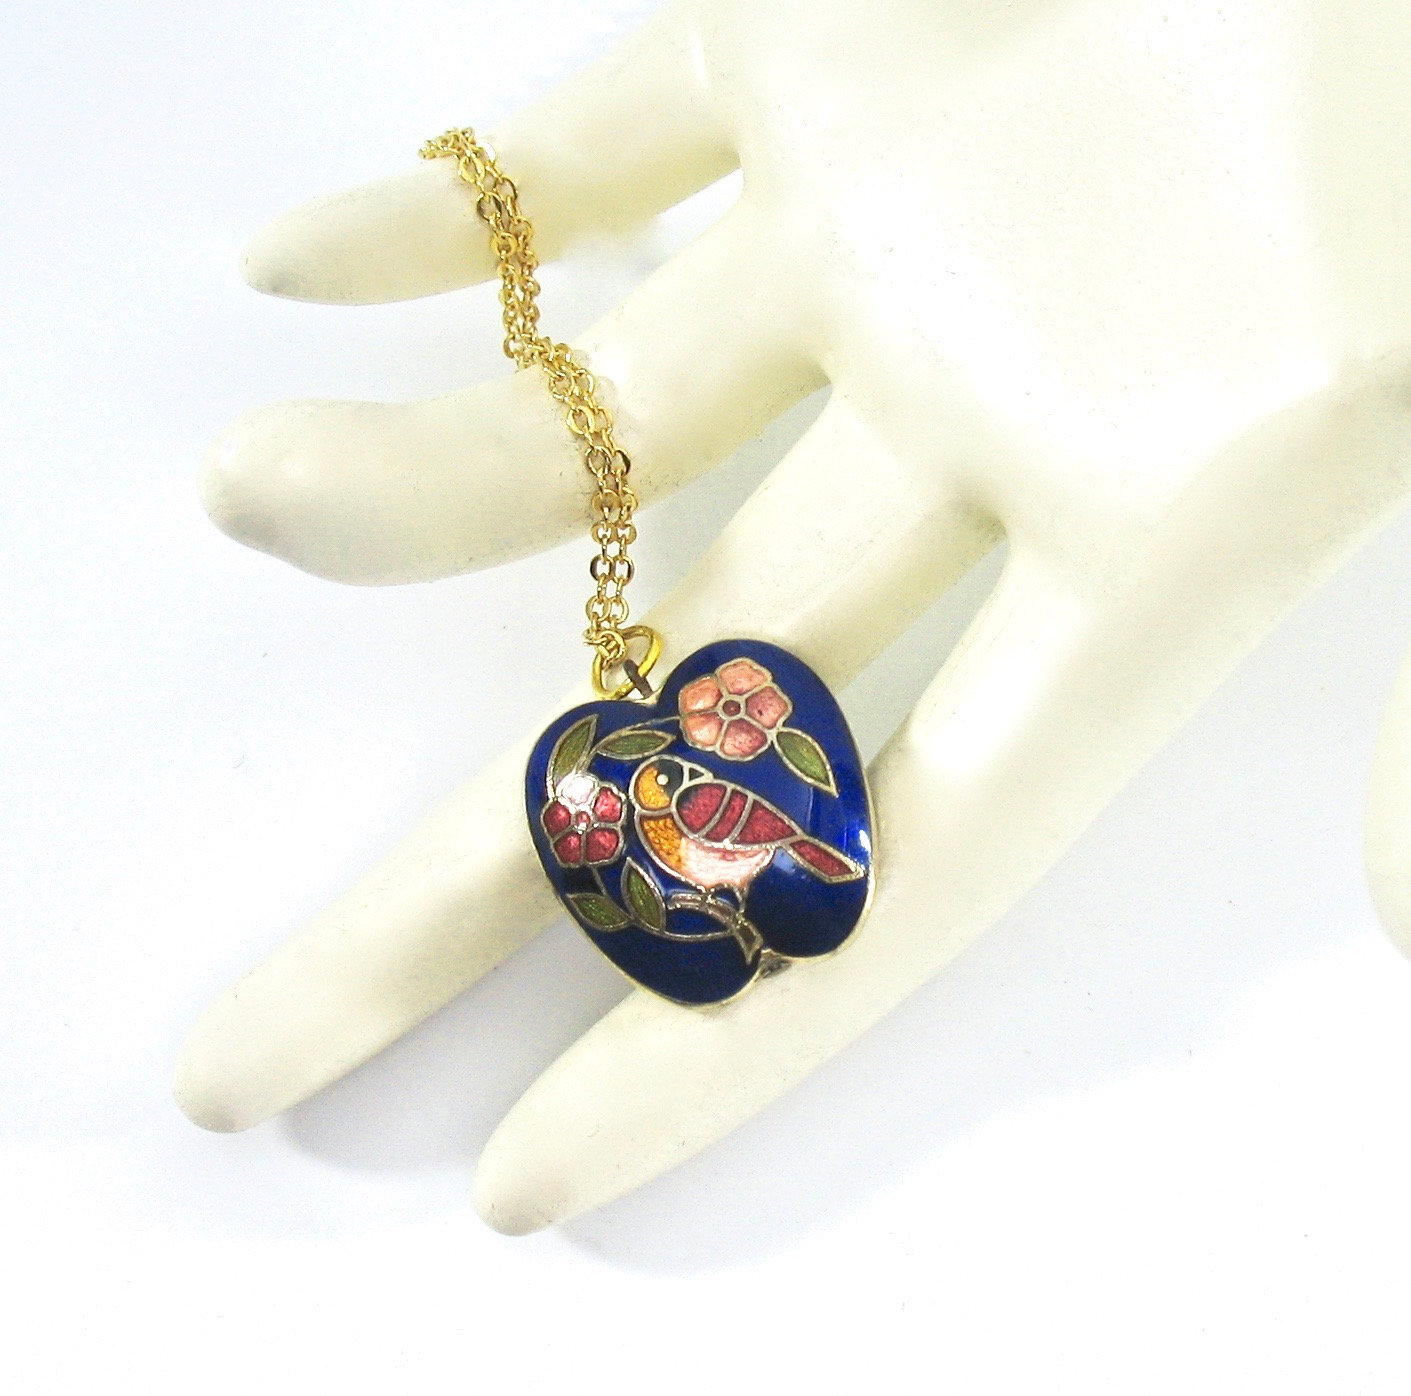 Cloisonne Pendant Necklace, Bird, Flowers, Blue, Pink, Asian, Gold Tone Chain, D